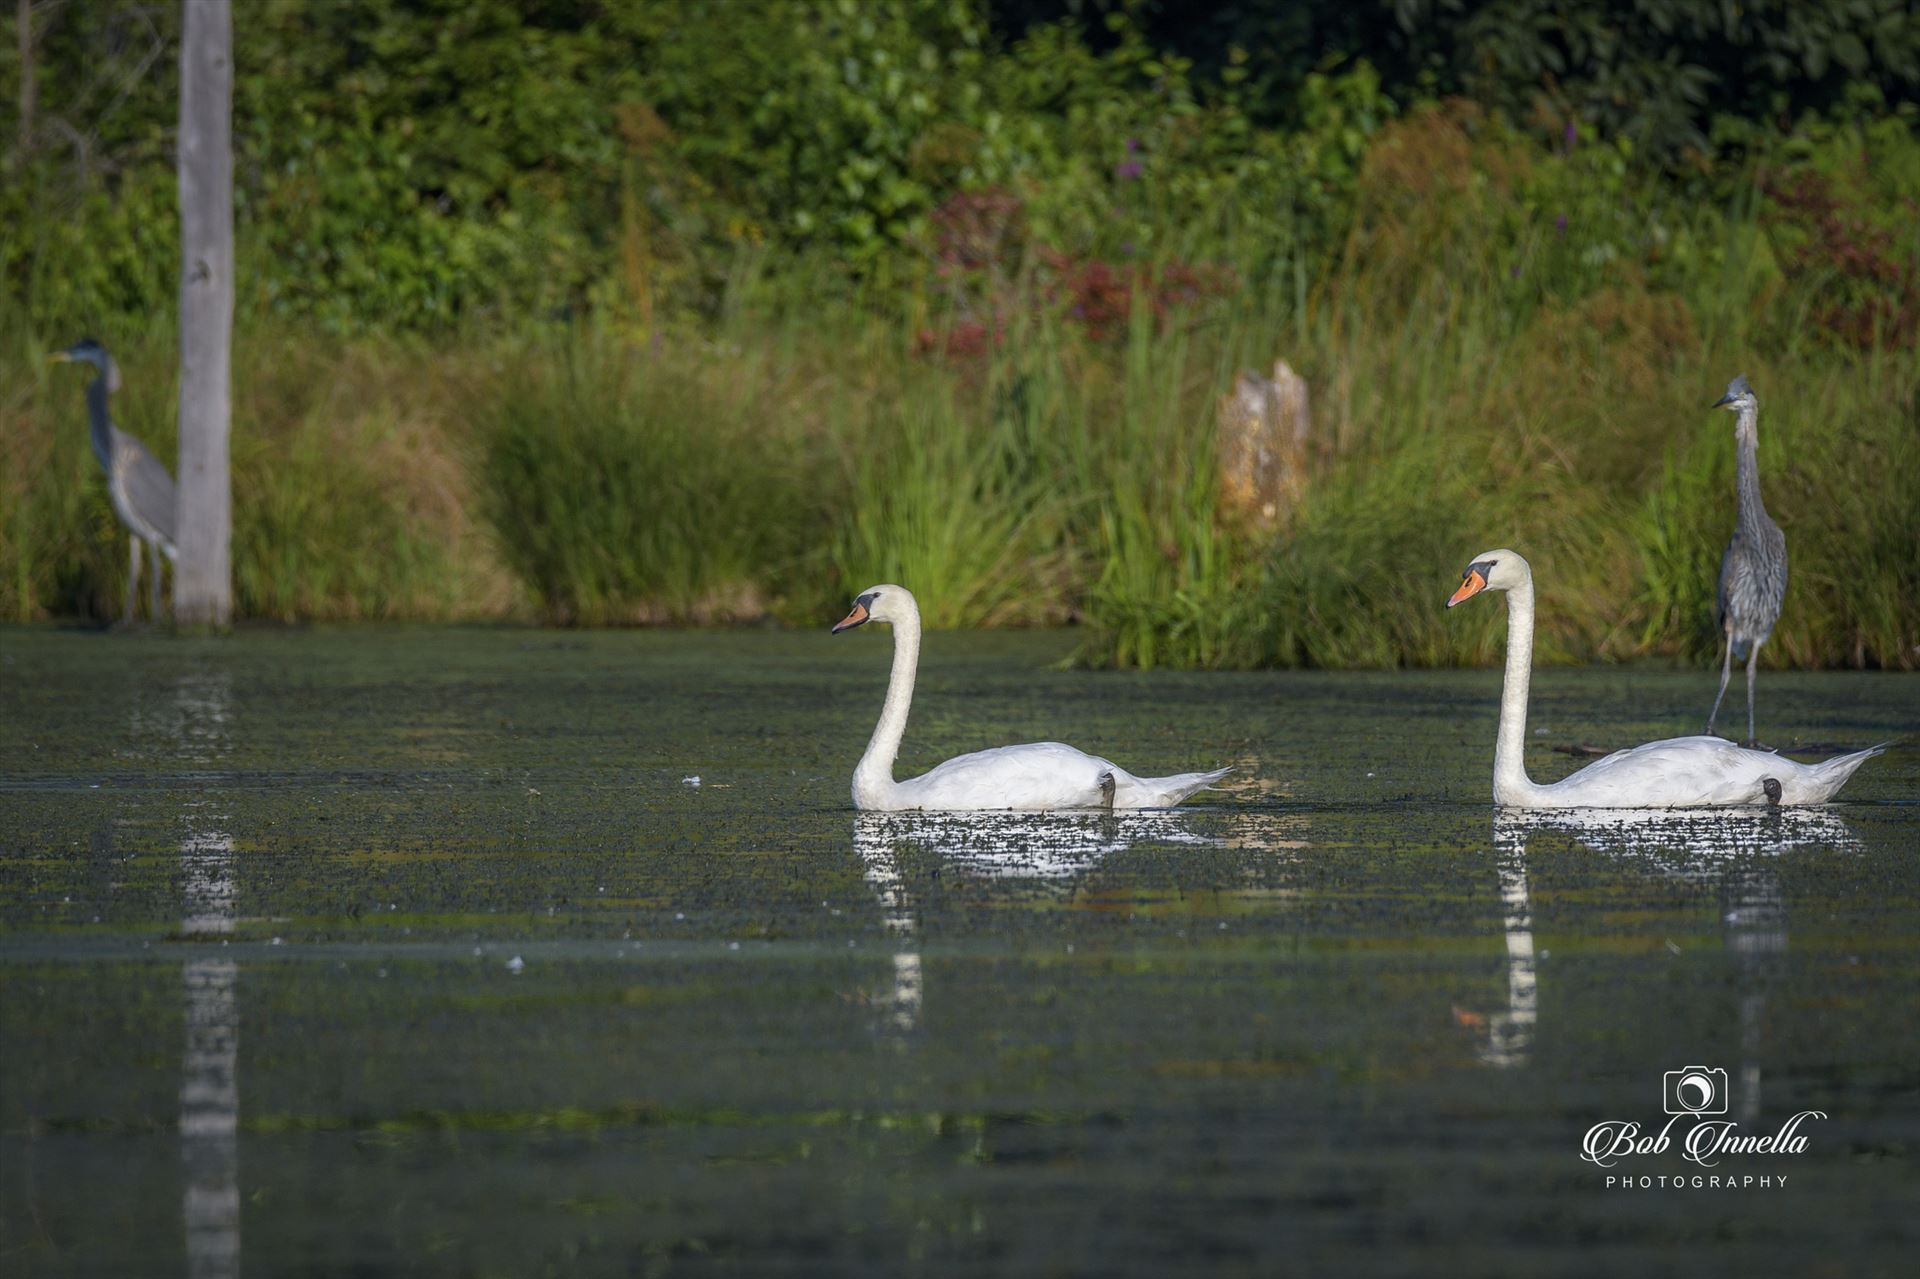 Wild White Swans - 2 White Swans with Two Great Blue Herons, Layton, NJ, National Park Service Land 2018 by Buckmaster